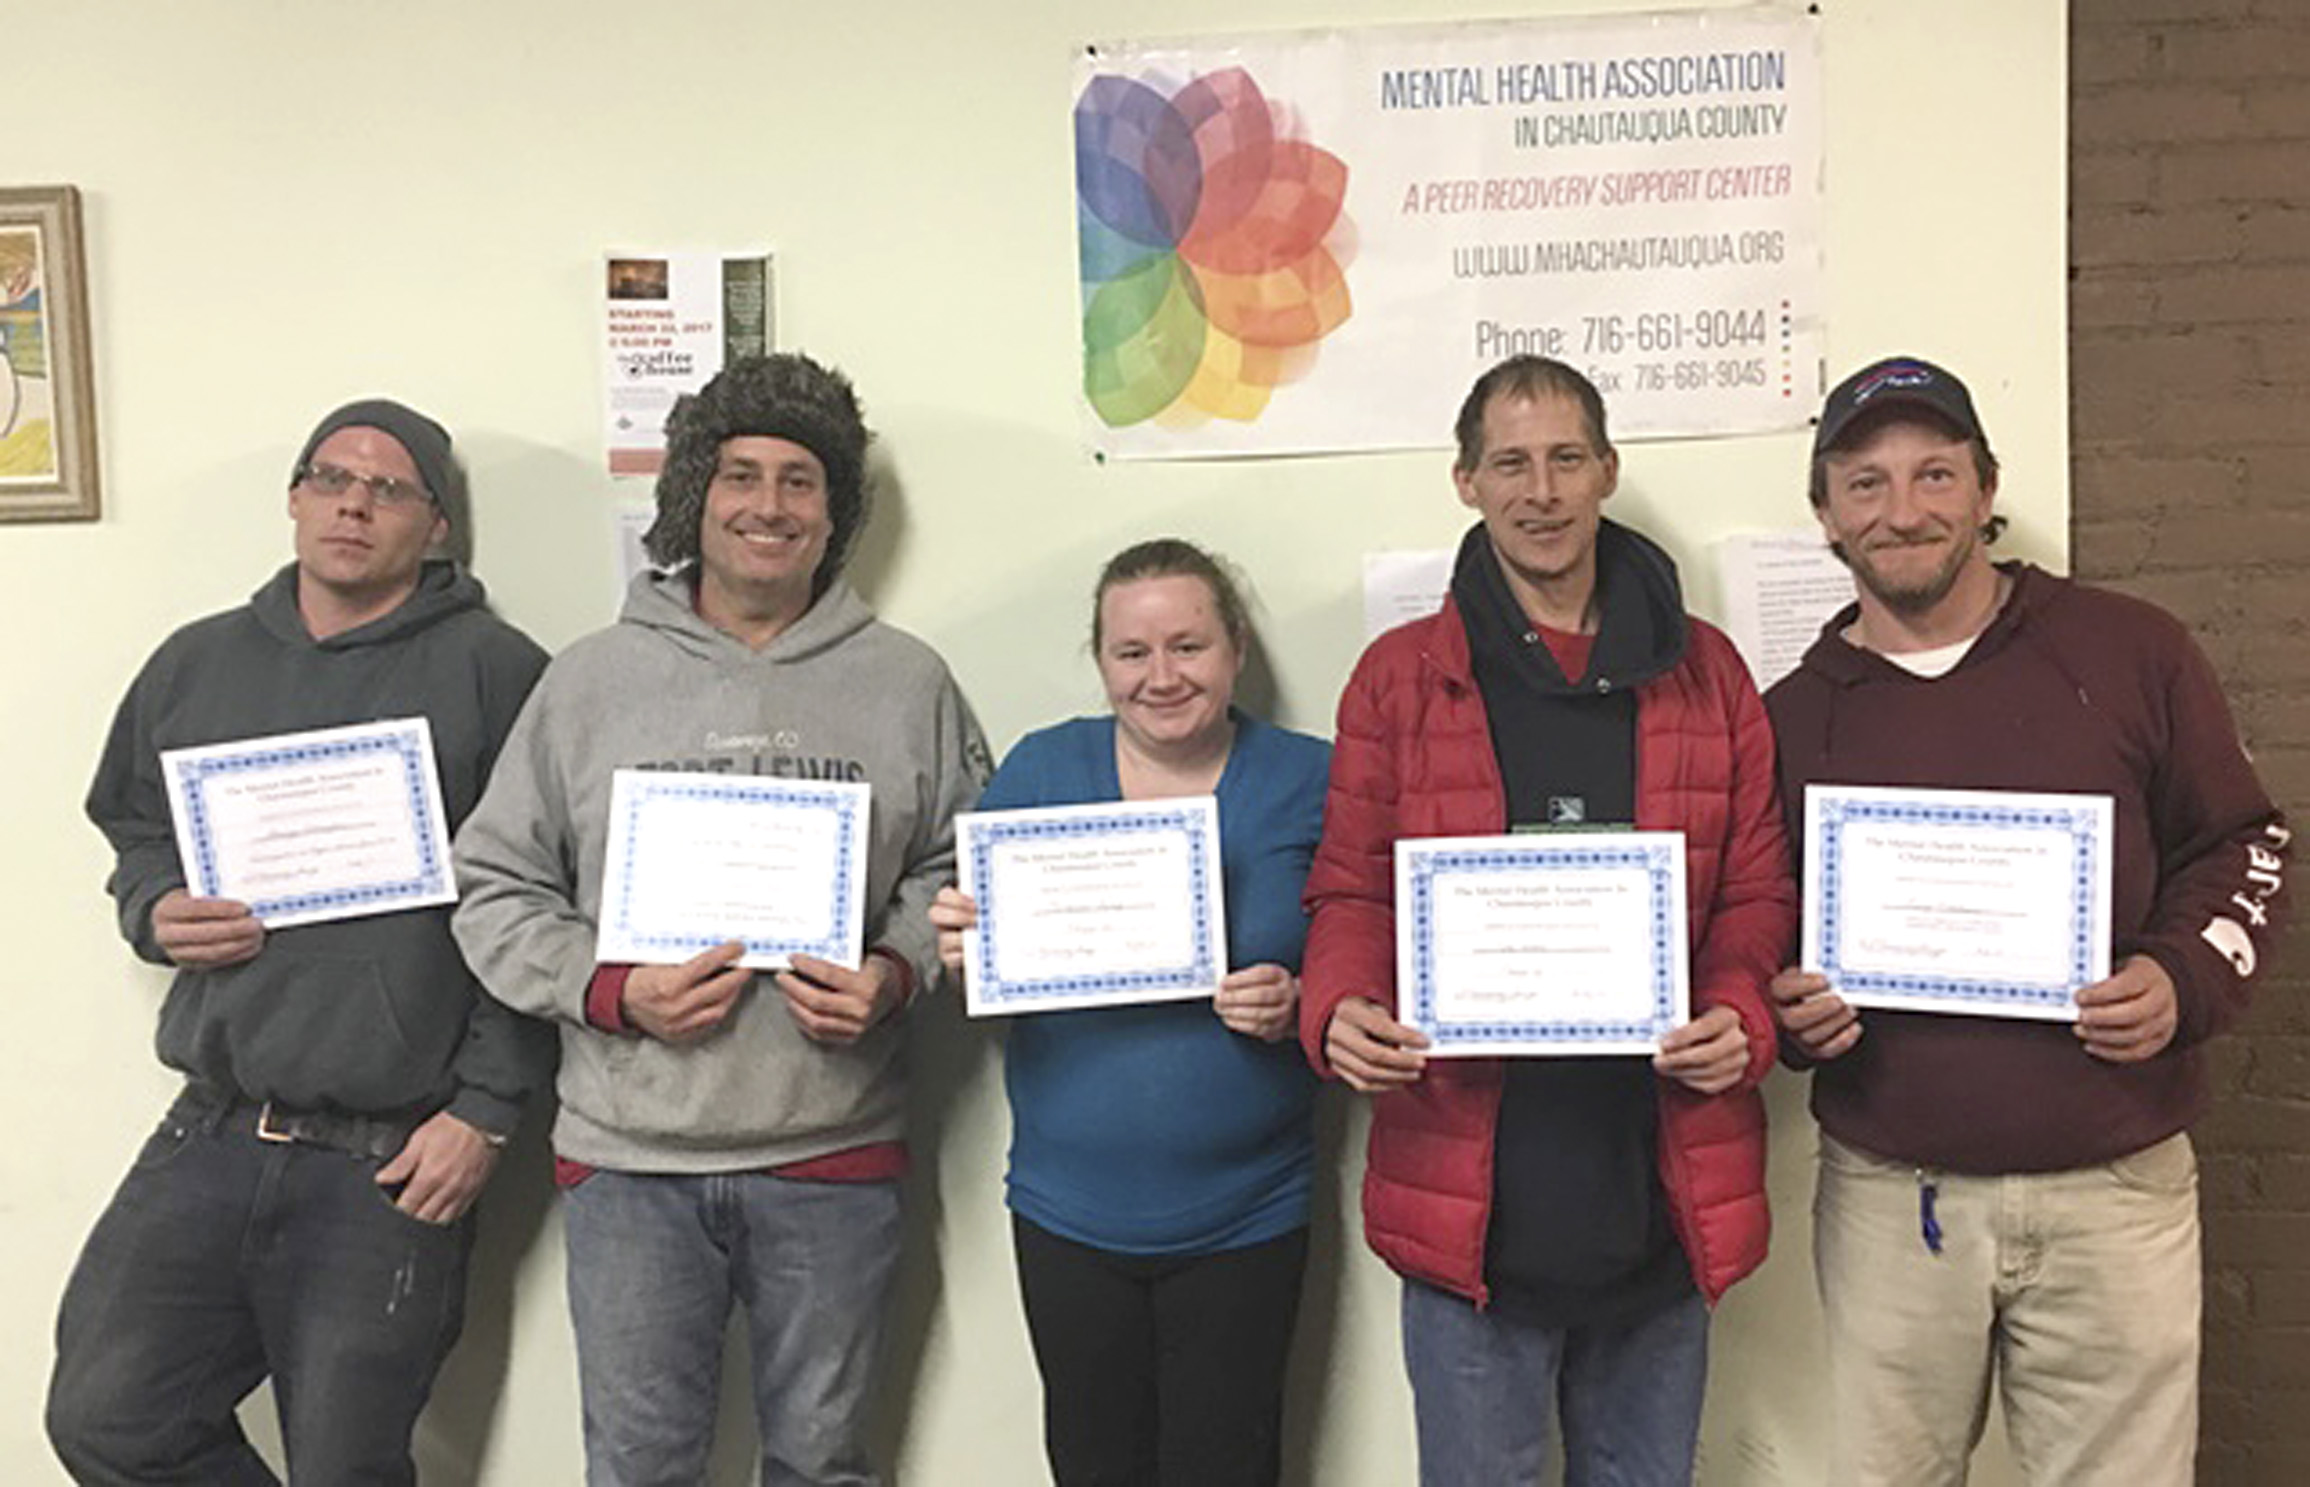 Many Announcements Recognitions At Mental Health Association